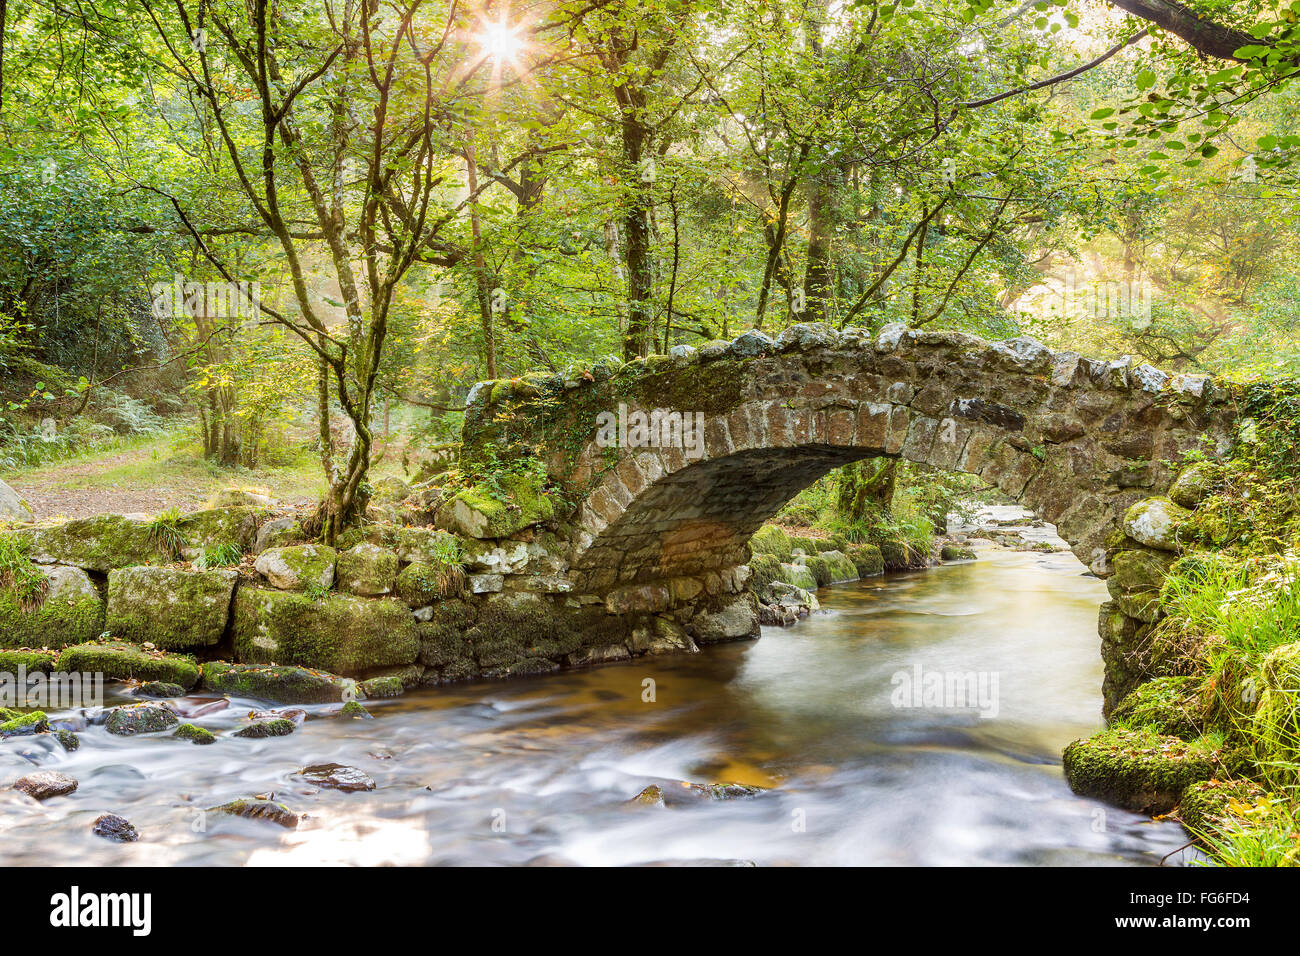 Hisley Bridge crossing the River Bovey, Dartmoor National Park, Lustleigh, Devon, England, United Kingdom, Europe. - Stock Image